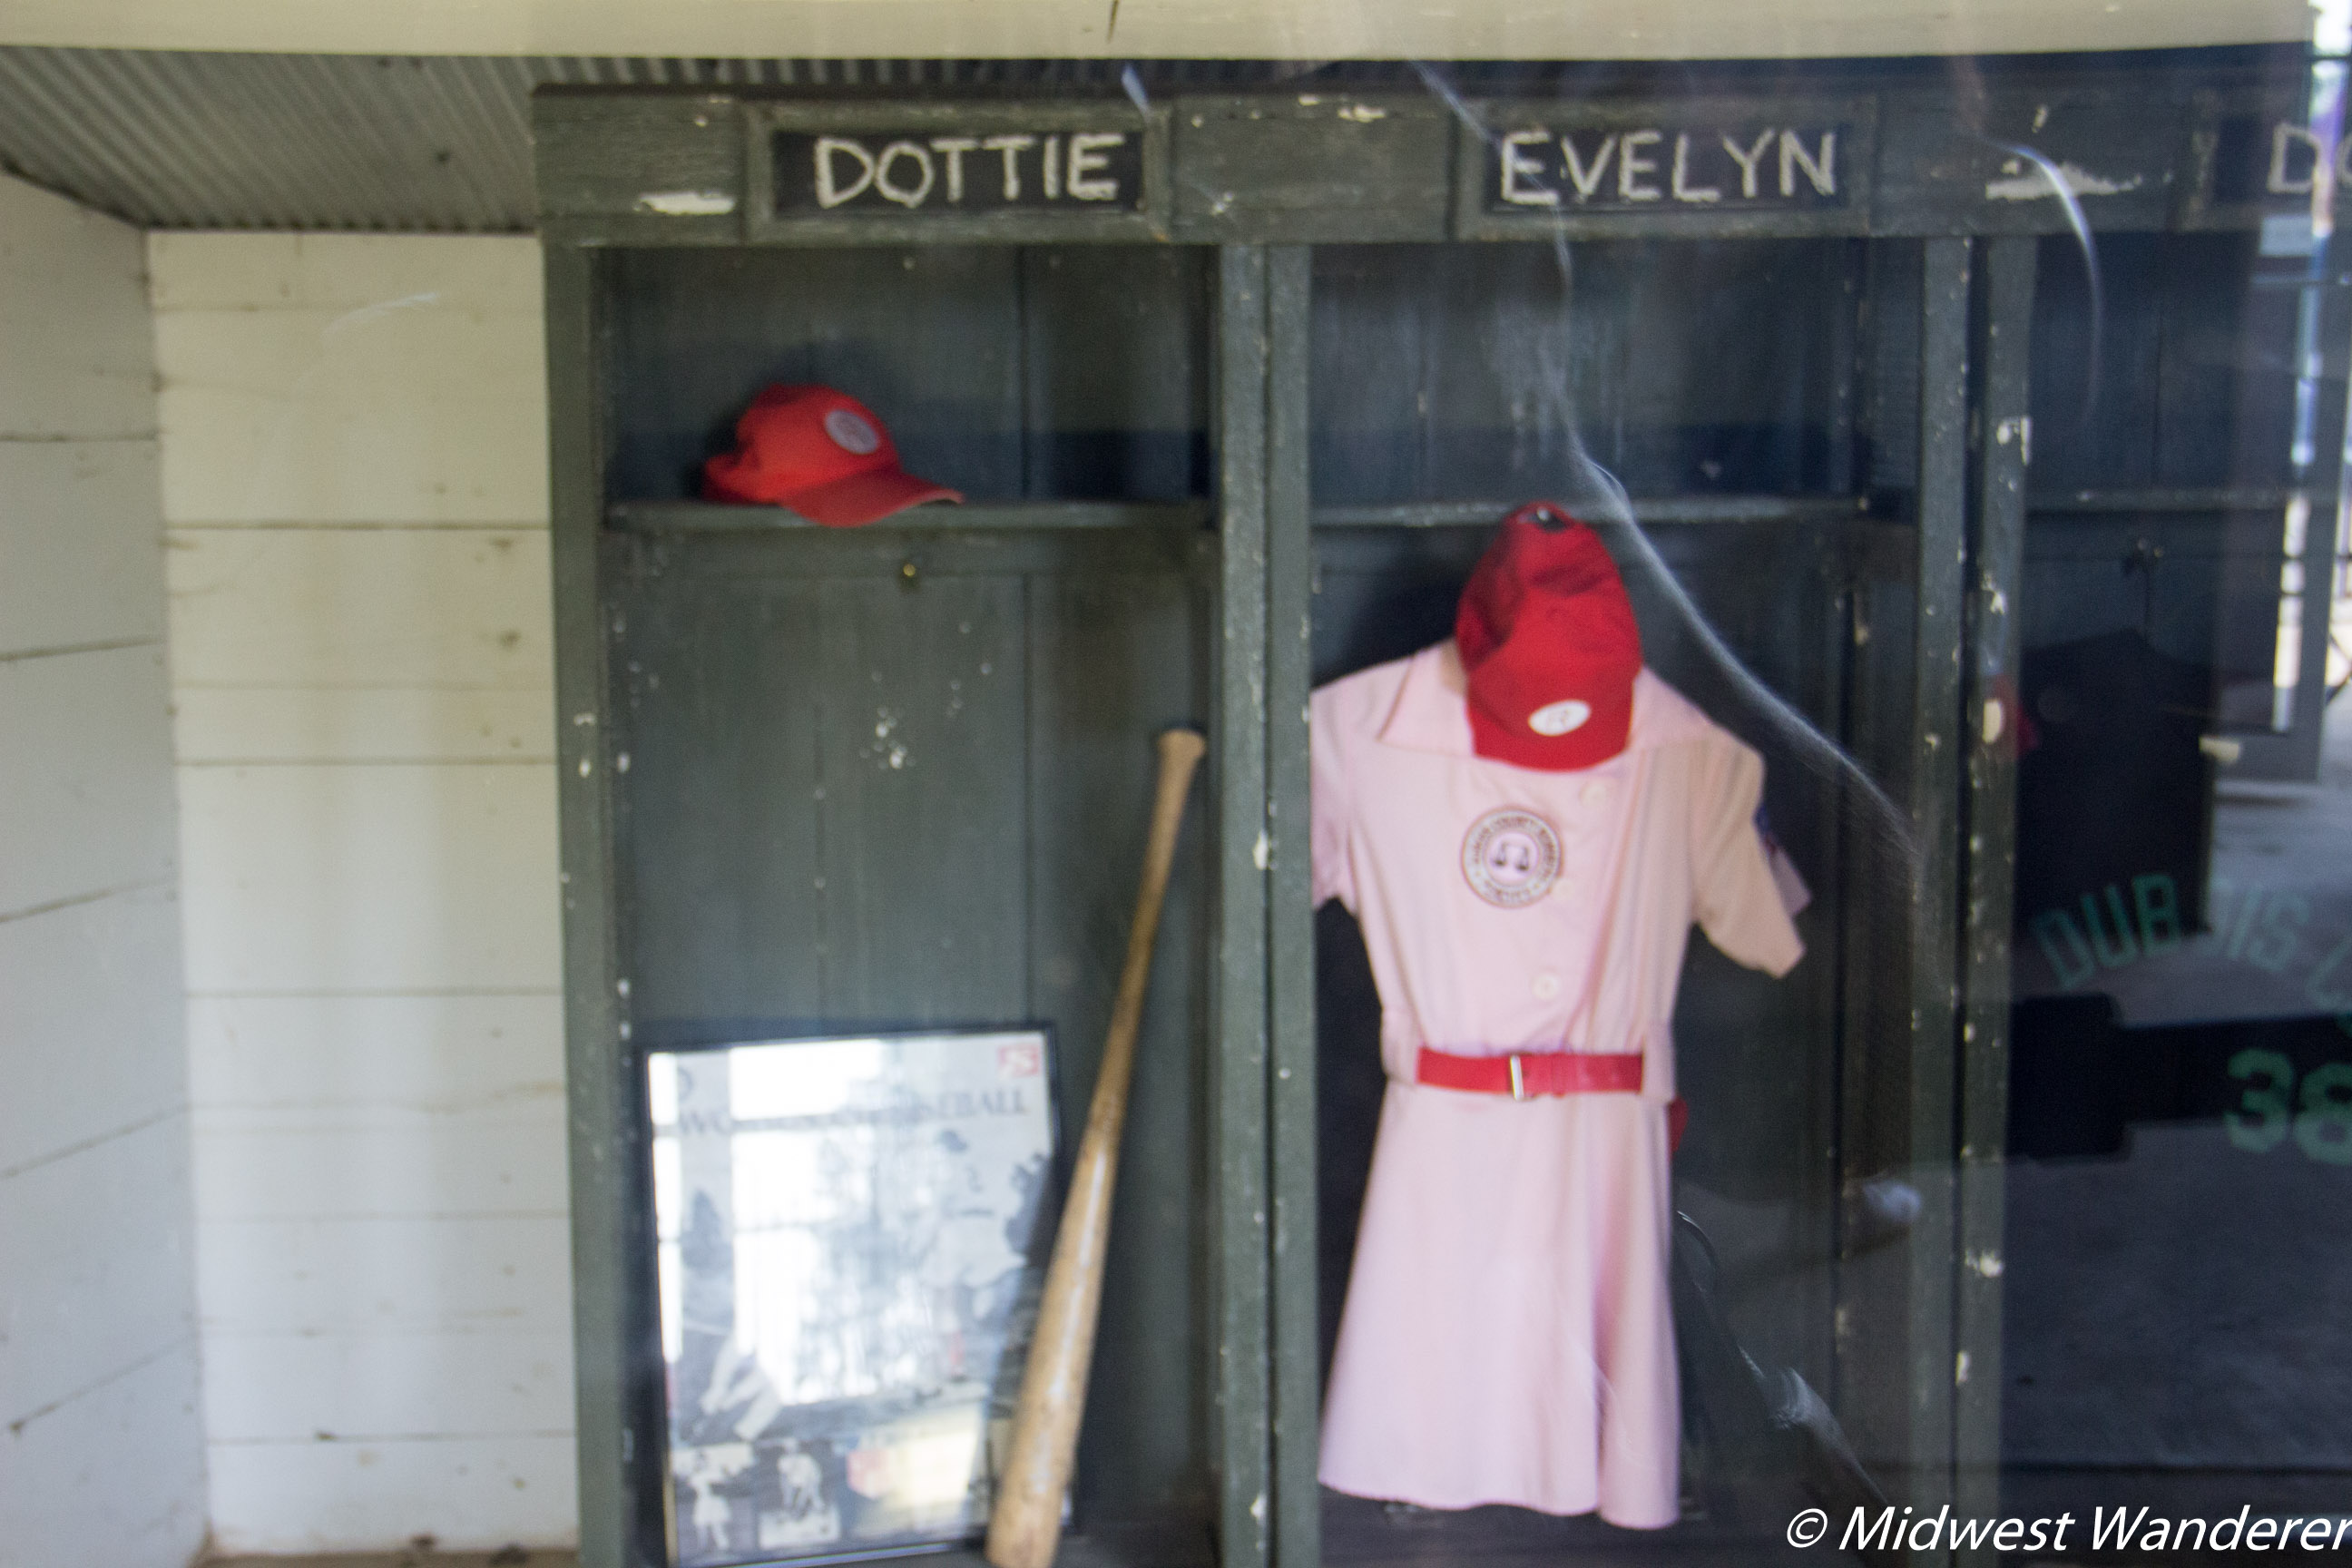 Uniform from A League of Their Own movie